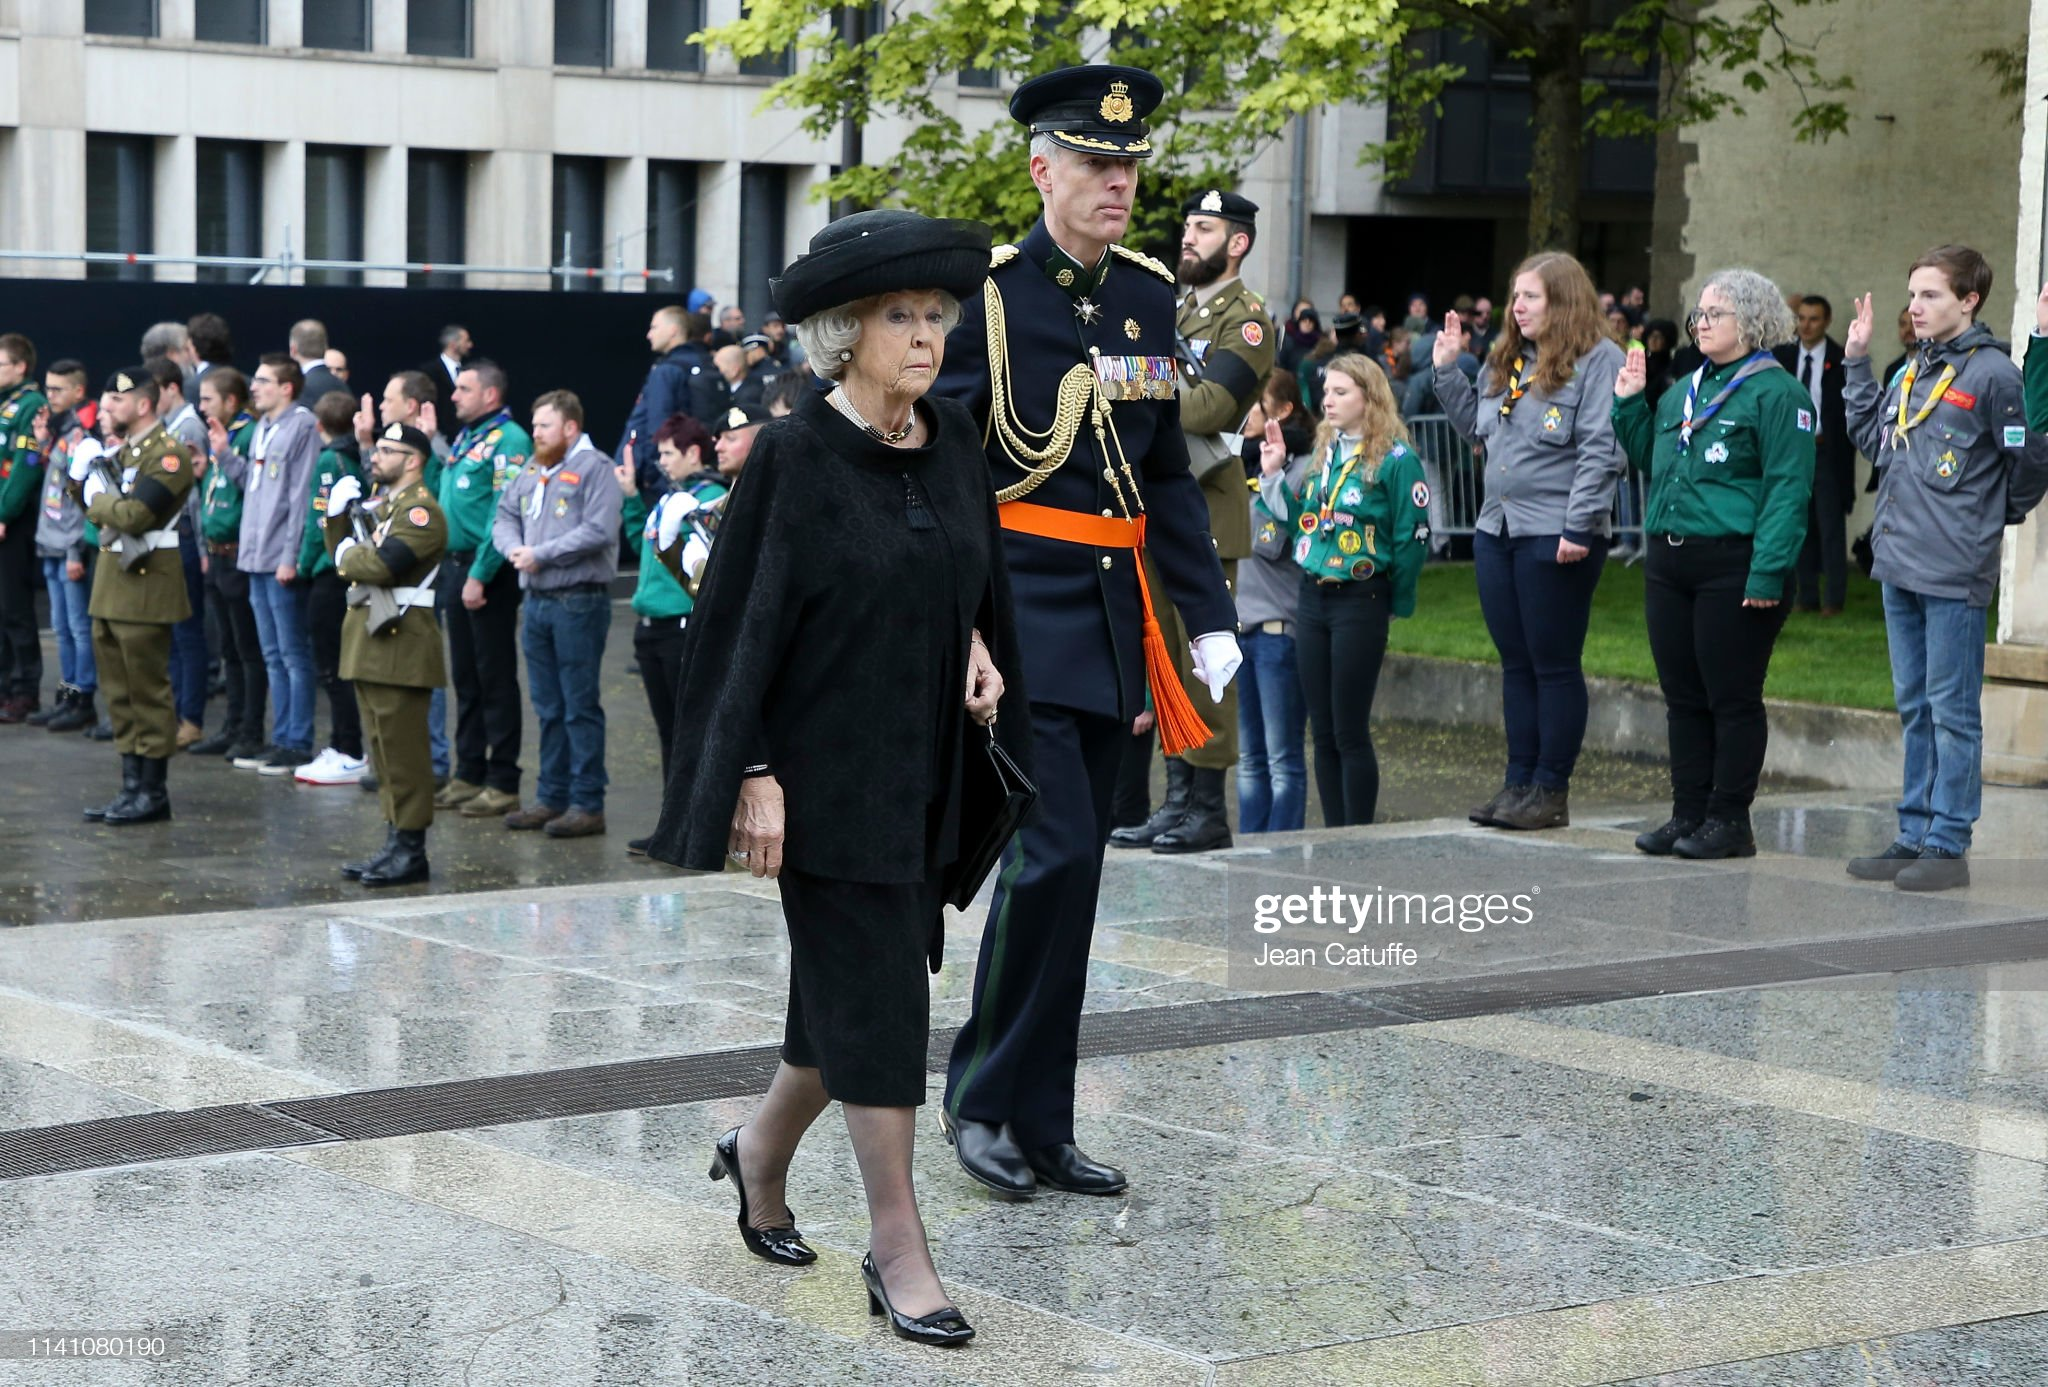 Похороны Великого Герцога Жана https://media.gettyimages.com/photos/princess-beatrix-of-the-netherlands-arrives-for-the-funeral-of-grand-picture-id1141080190?s=2048x2048